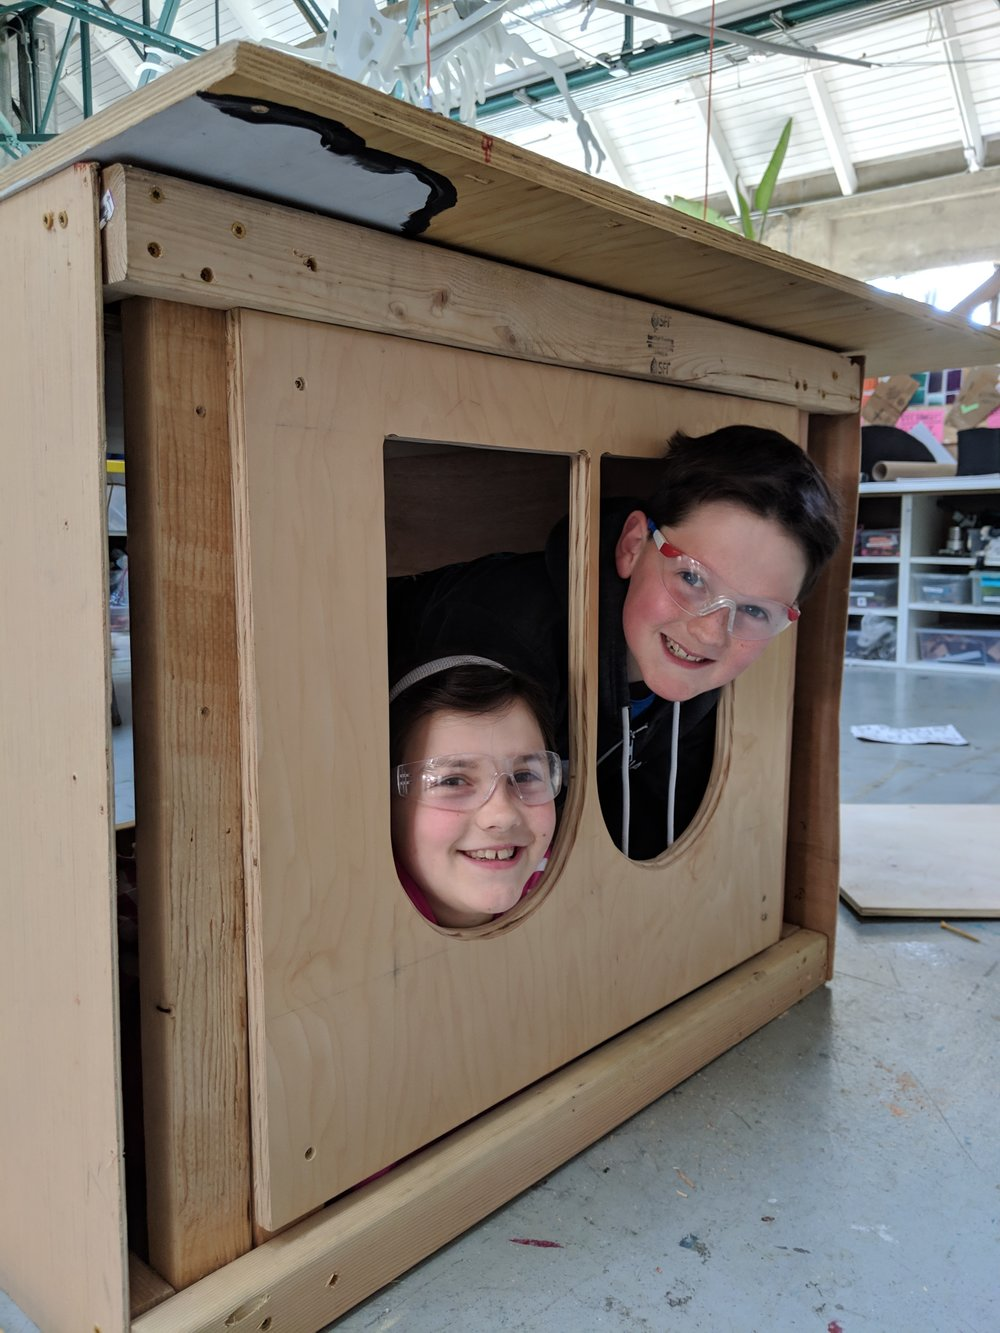 Elliot and Lily had the giggles as they tested out the windows of the upside down train car. :)